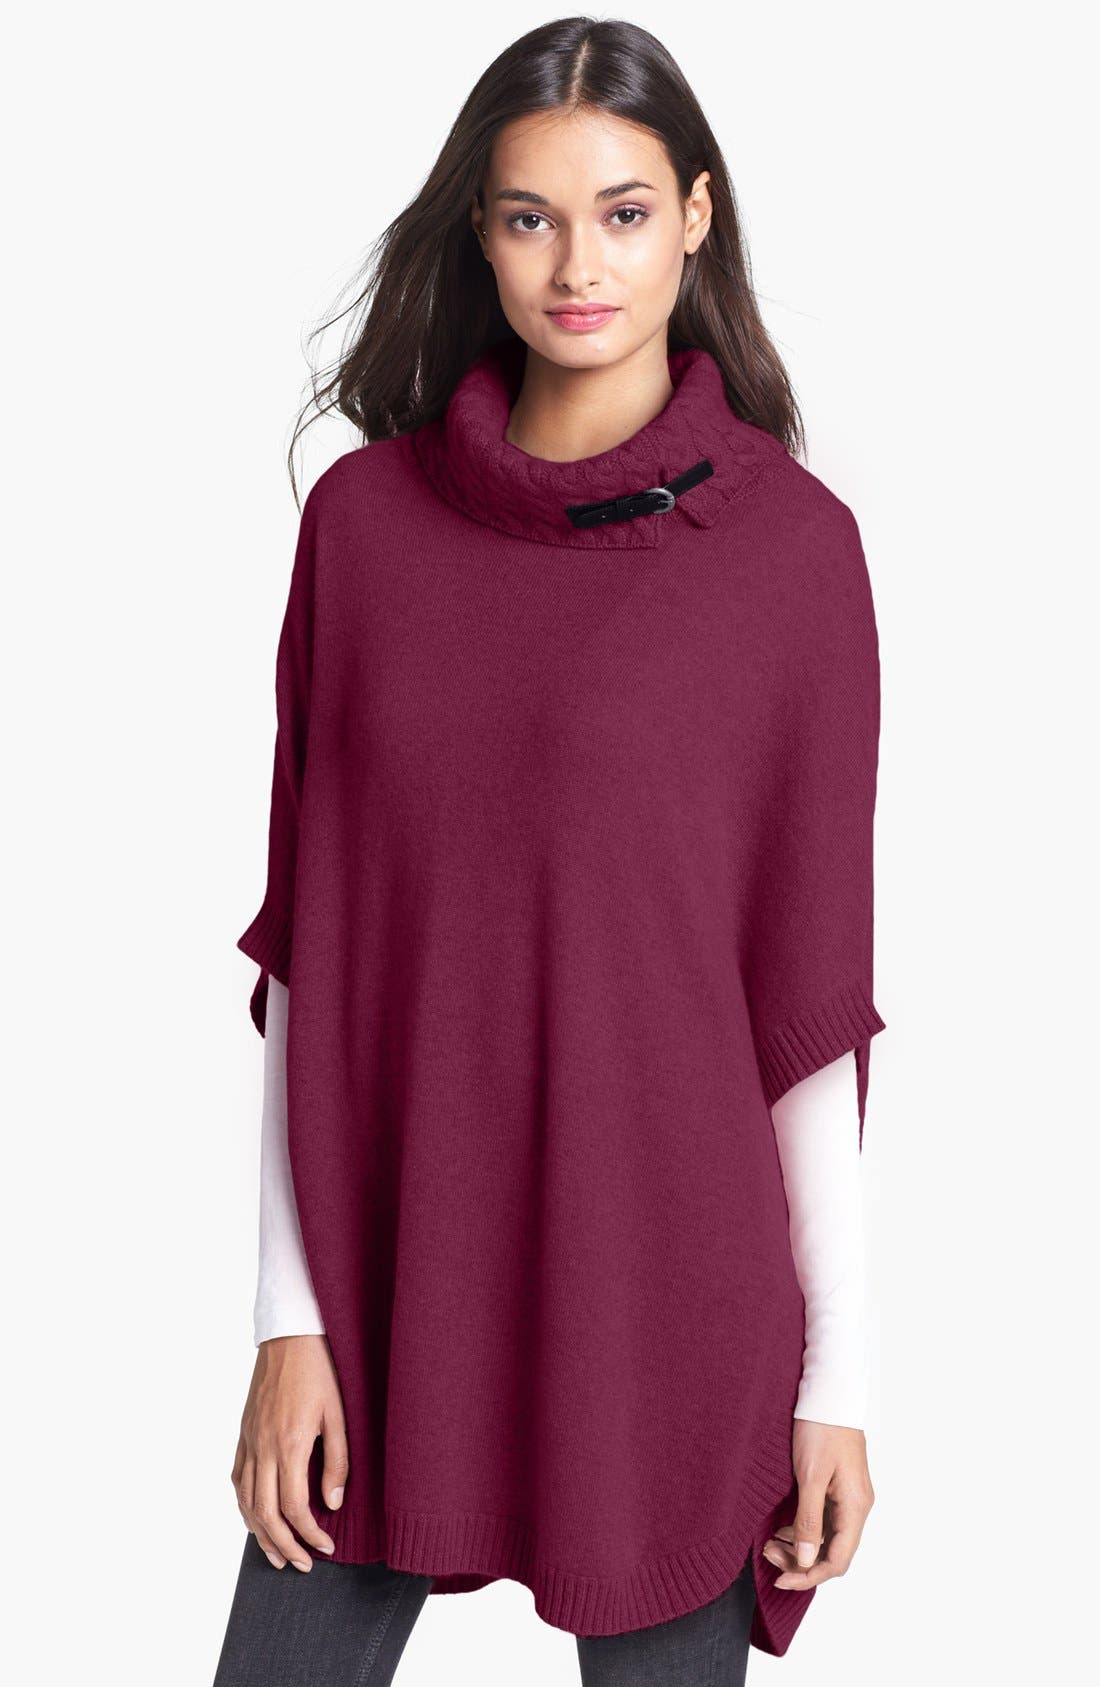 Main Image - Nordstrom Cashmere Turtleneck Topper (Special Purchase)